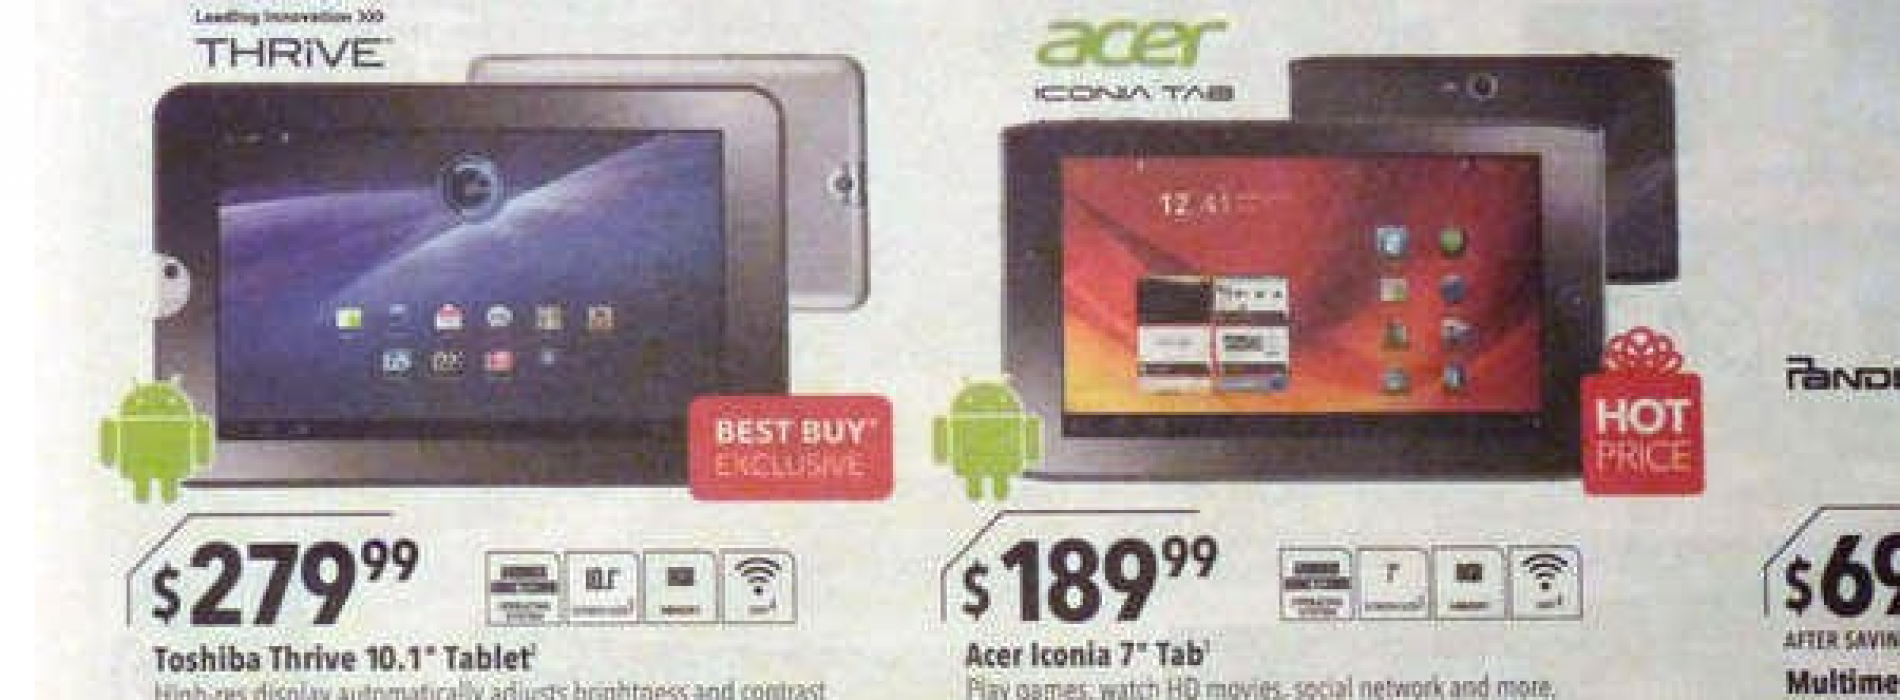 Best Buy Black Friday ad has plenty of free Android smartphones